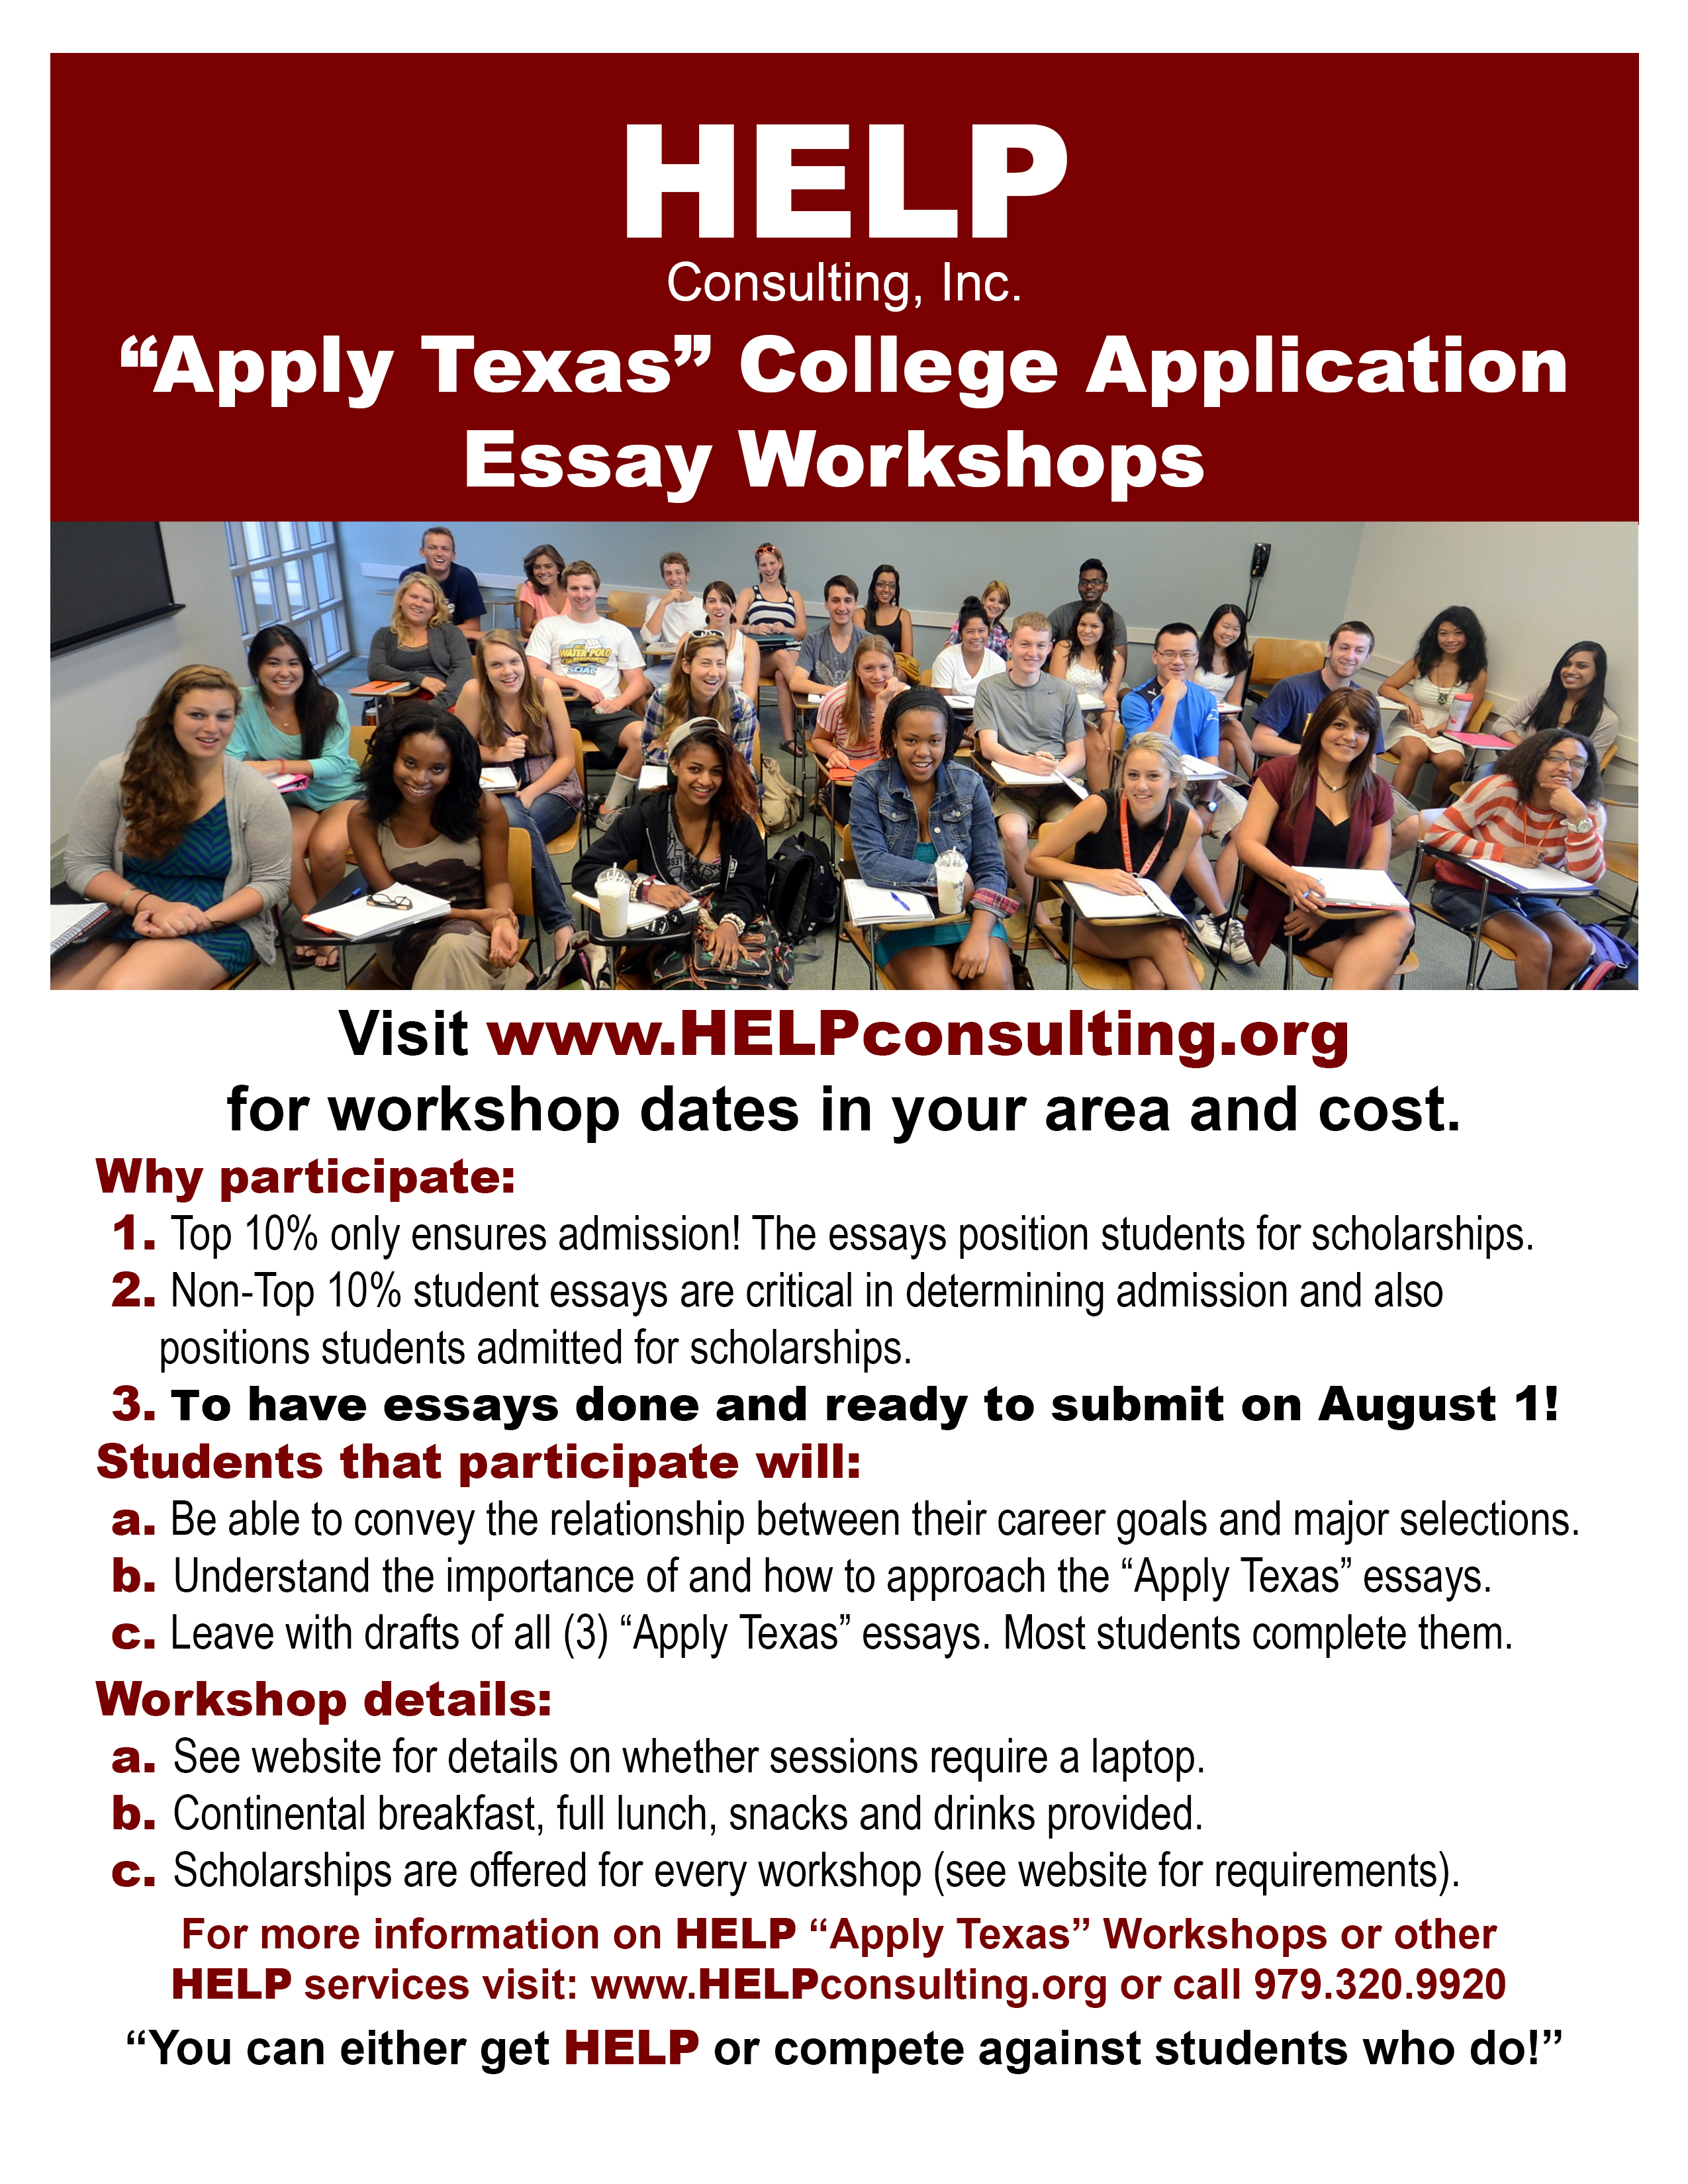 011 Apply Texas Essay Prompts Example Help Ap Tx Flyer Top Examples A B And C Full